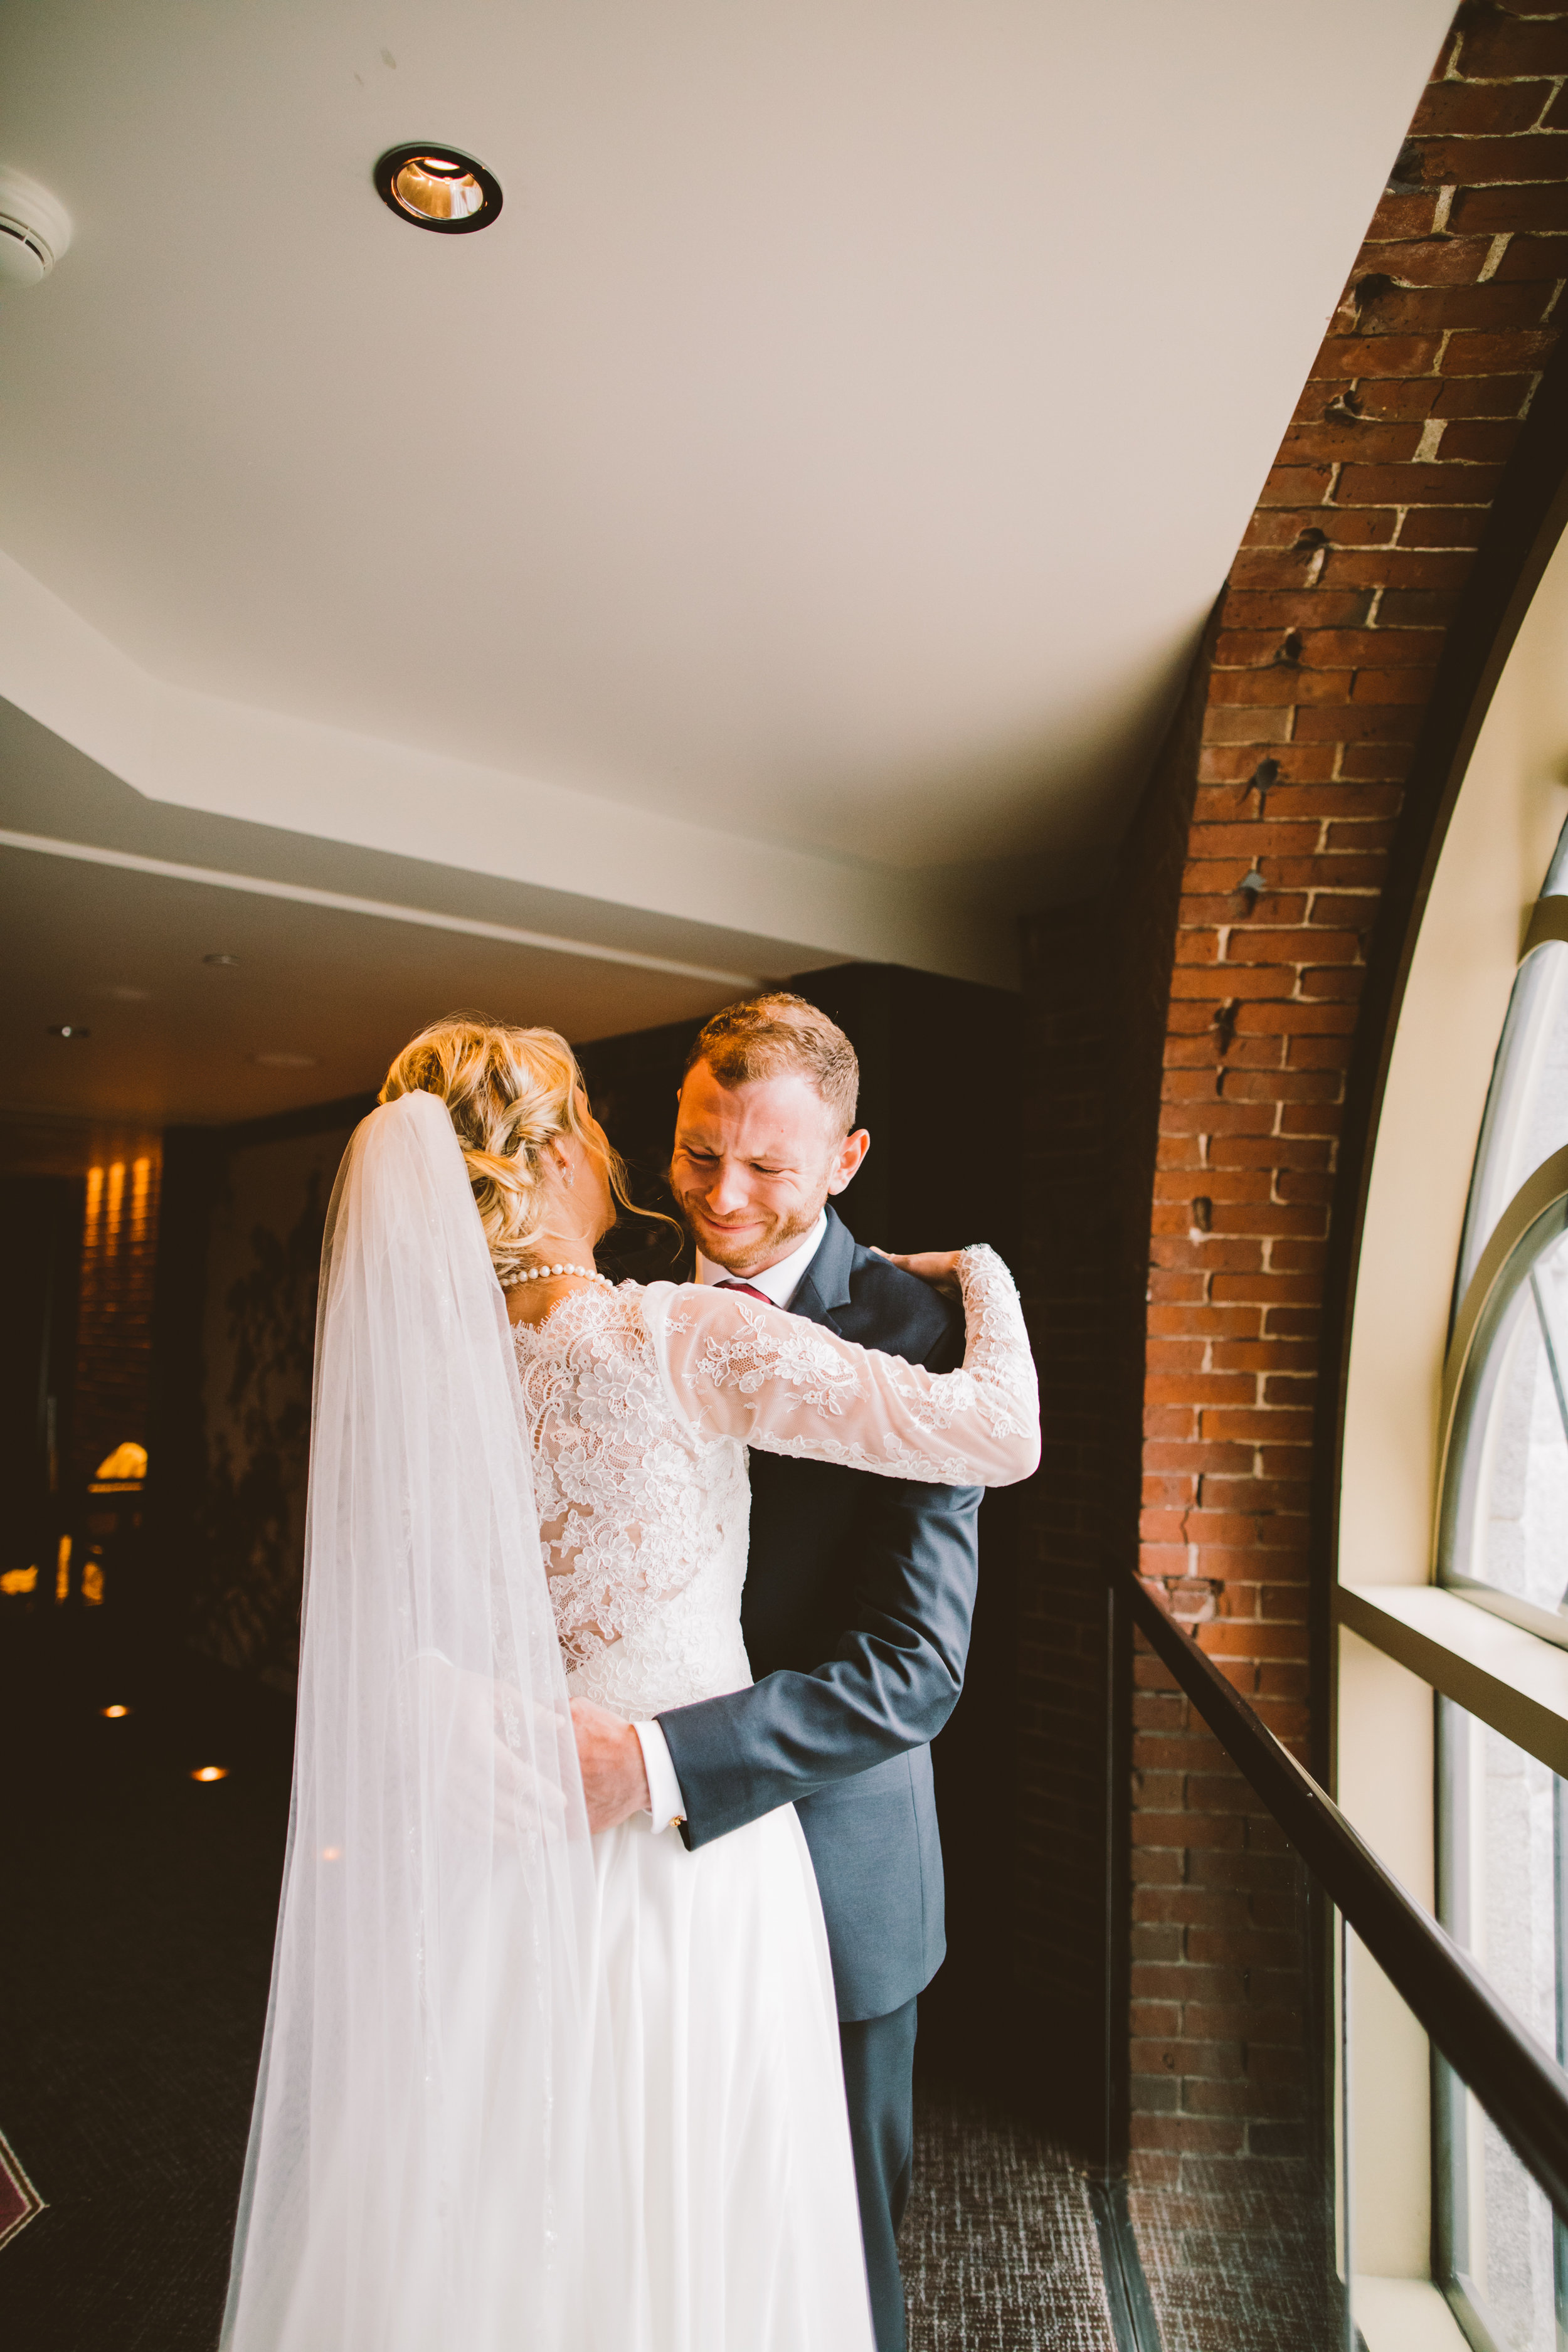 The Liberty Hotel Wedding in Boston | Boston Wedding Photographer | First Look | Tida Svy | www.tidasvy.com